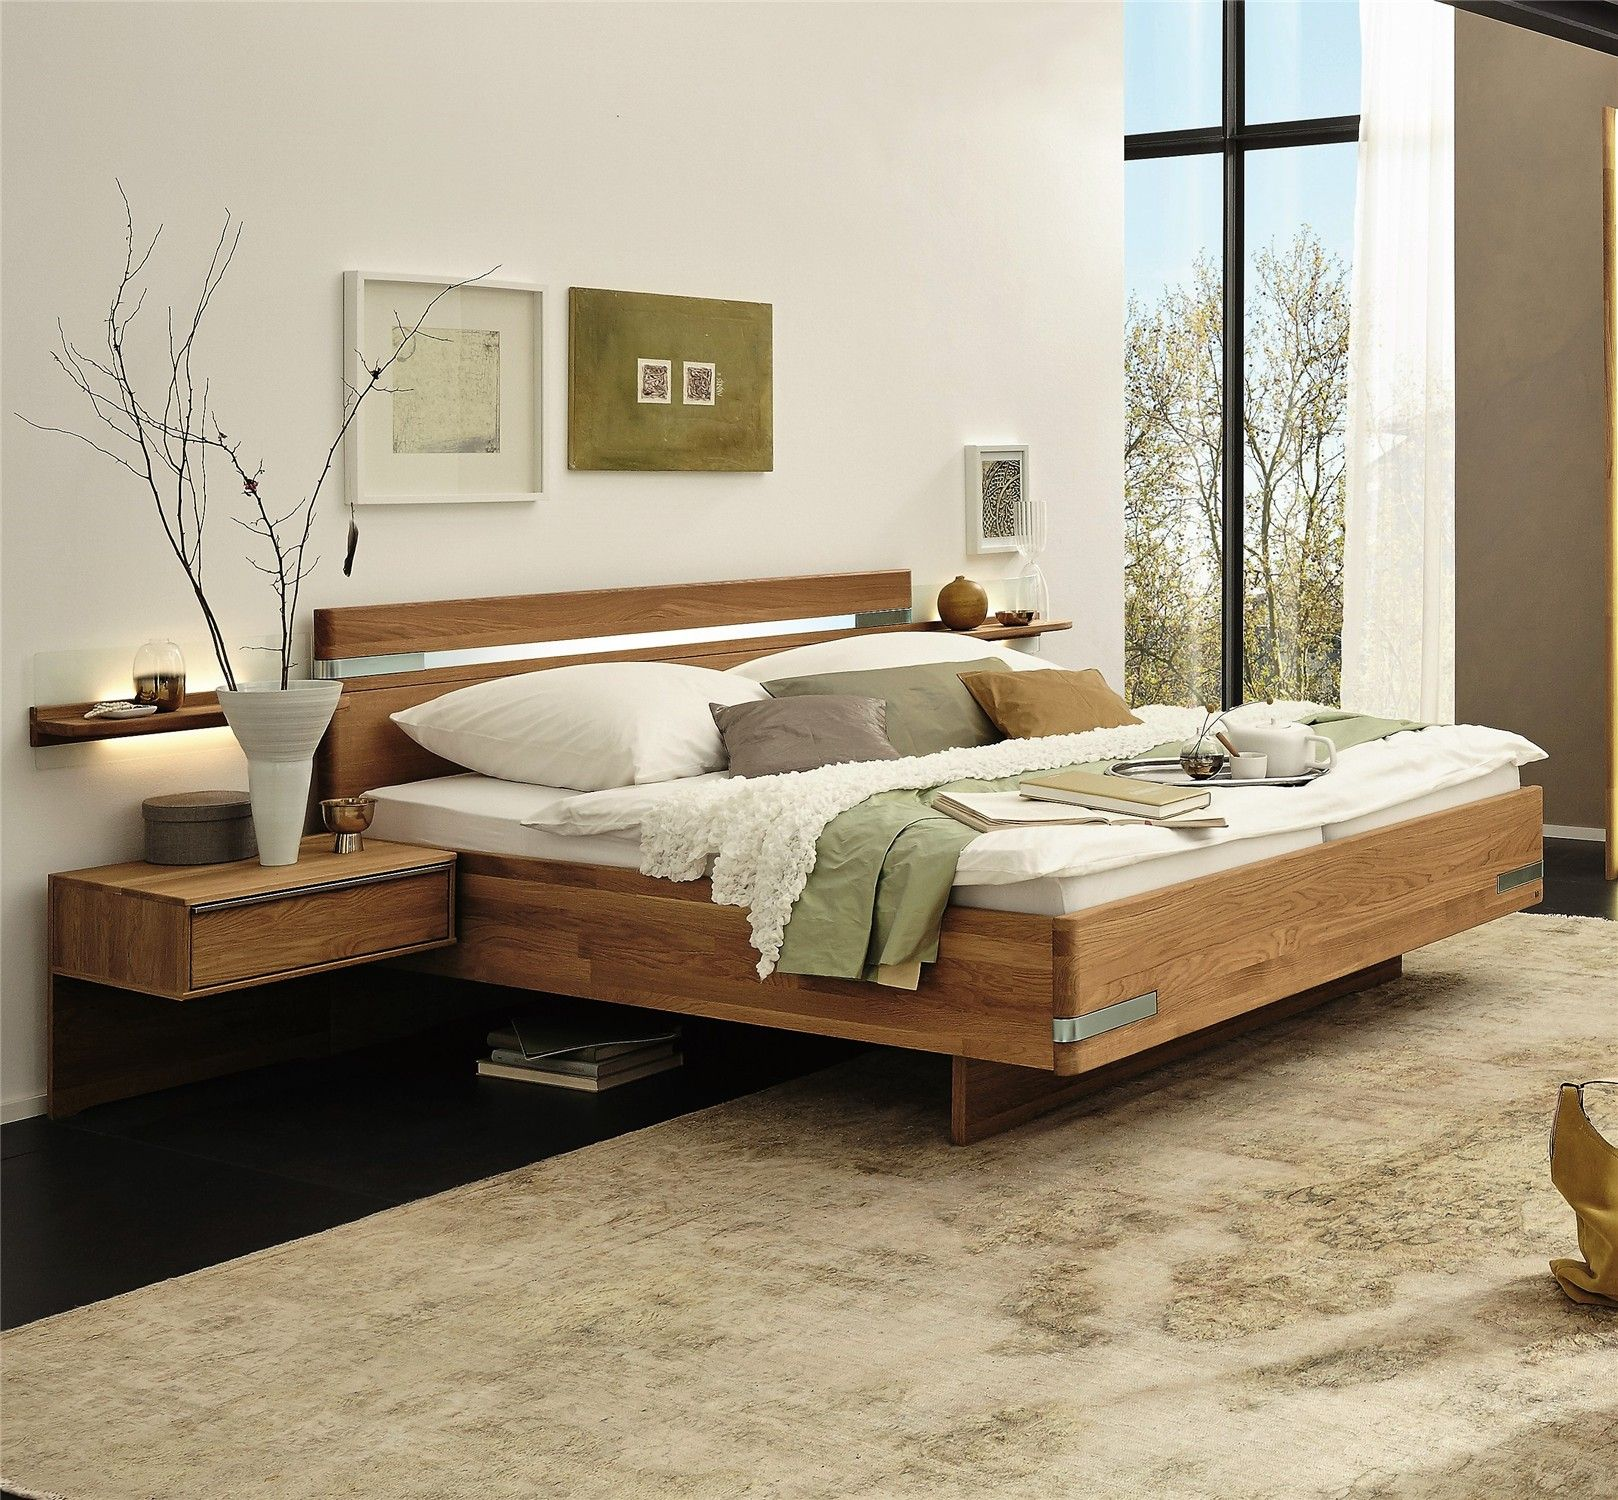 Stylform pegasus semi solid oak modern bed solid oak pegasus and